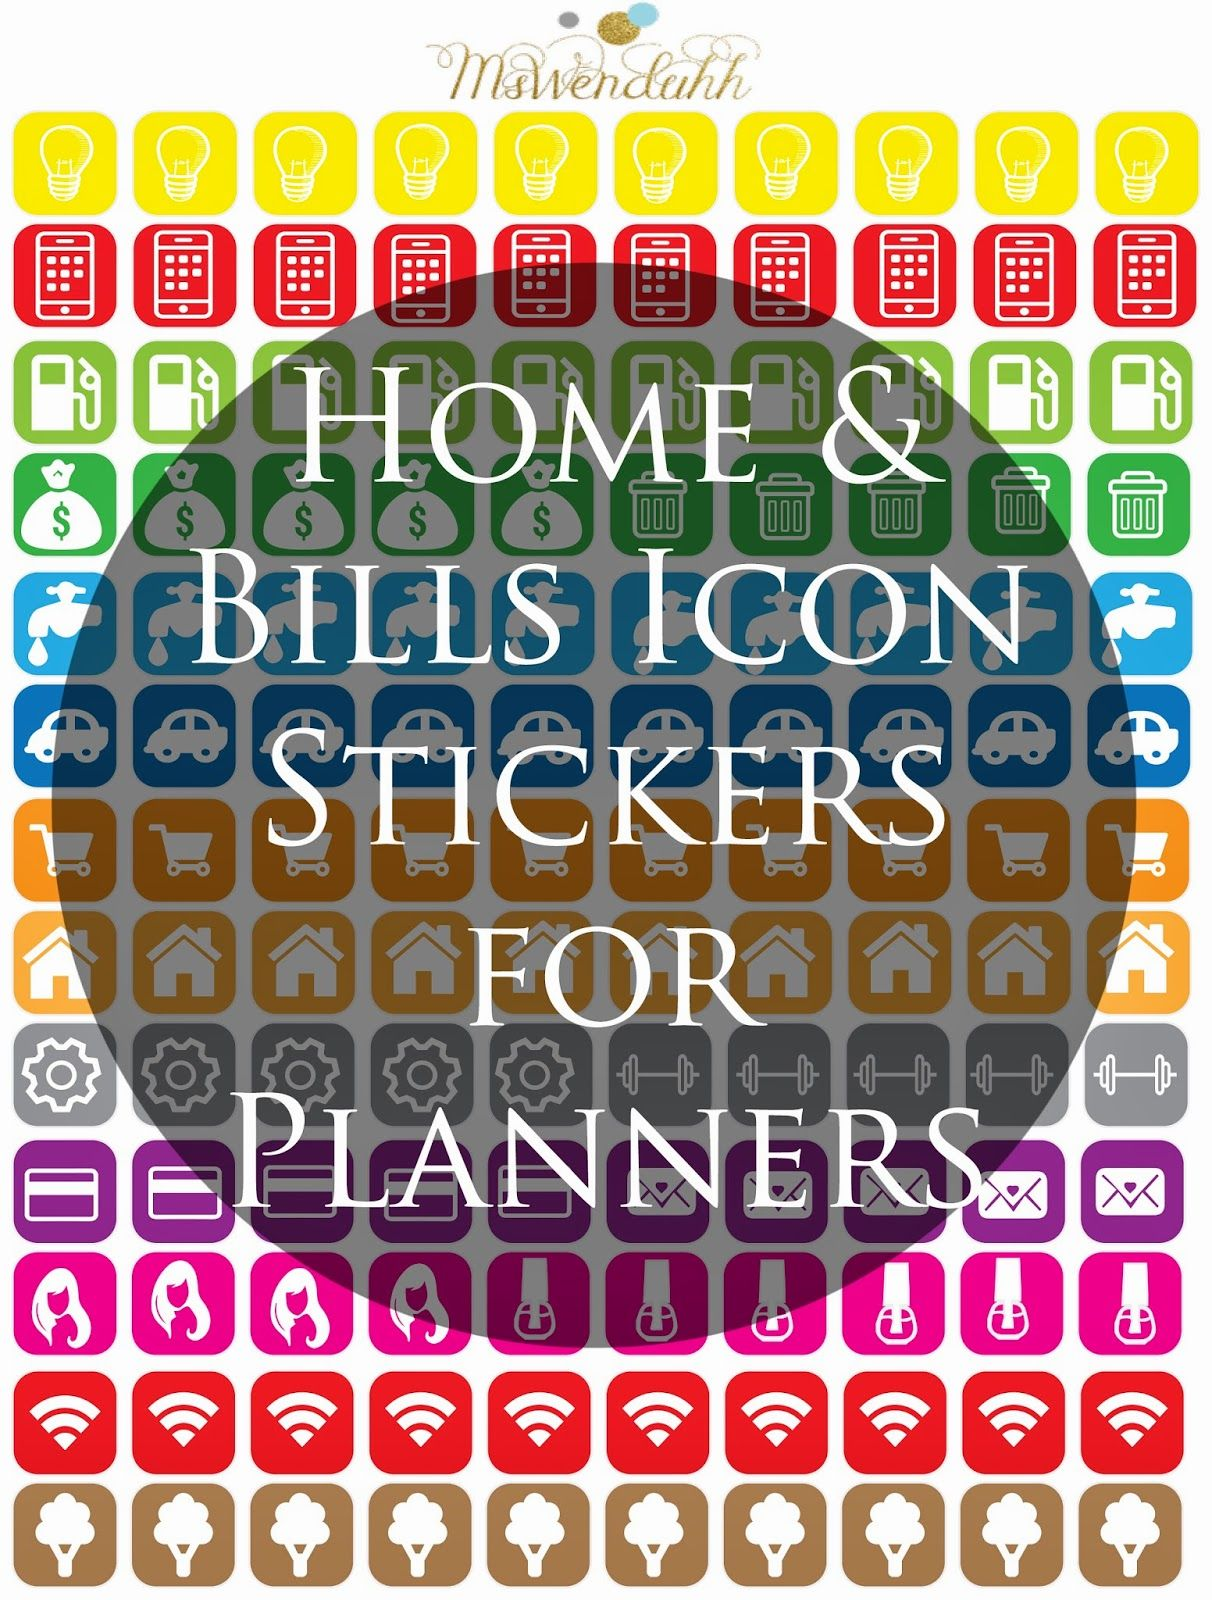 home bill icons stickers mswenduhh free printable stickers